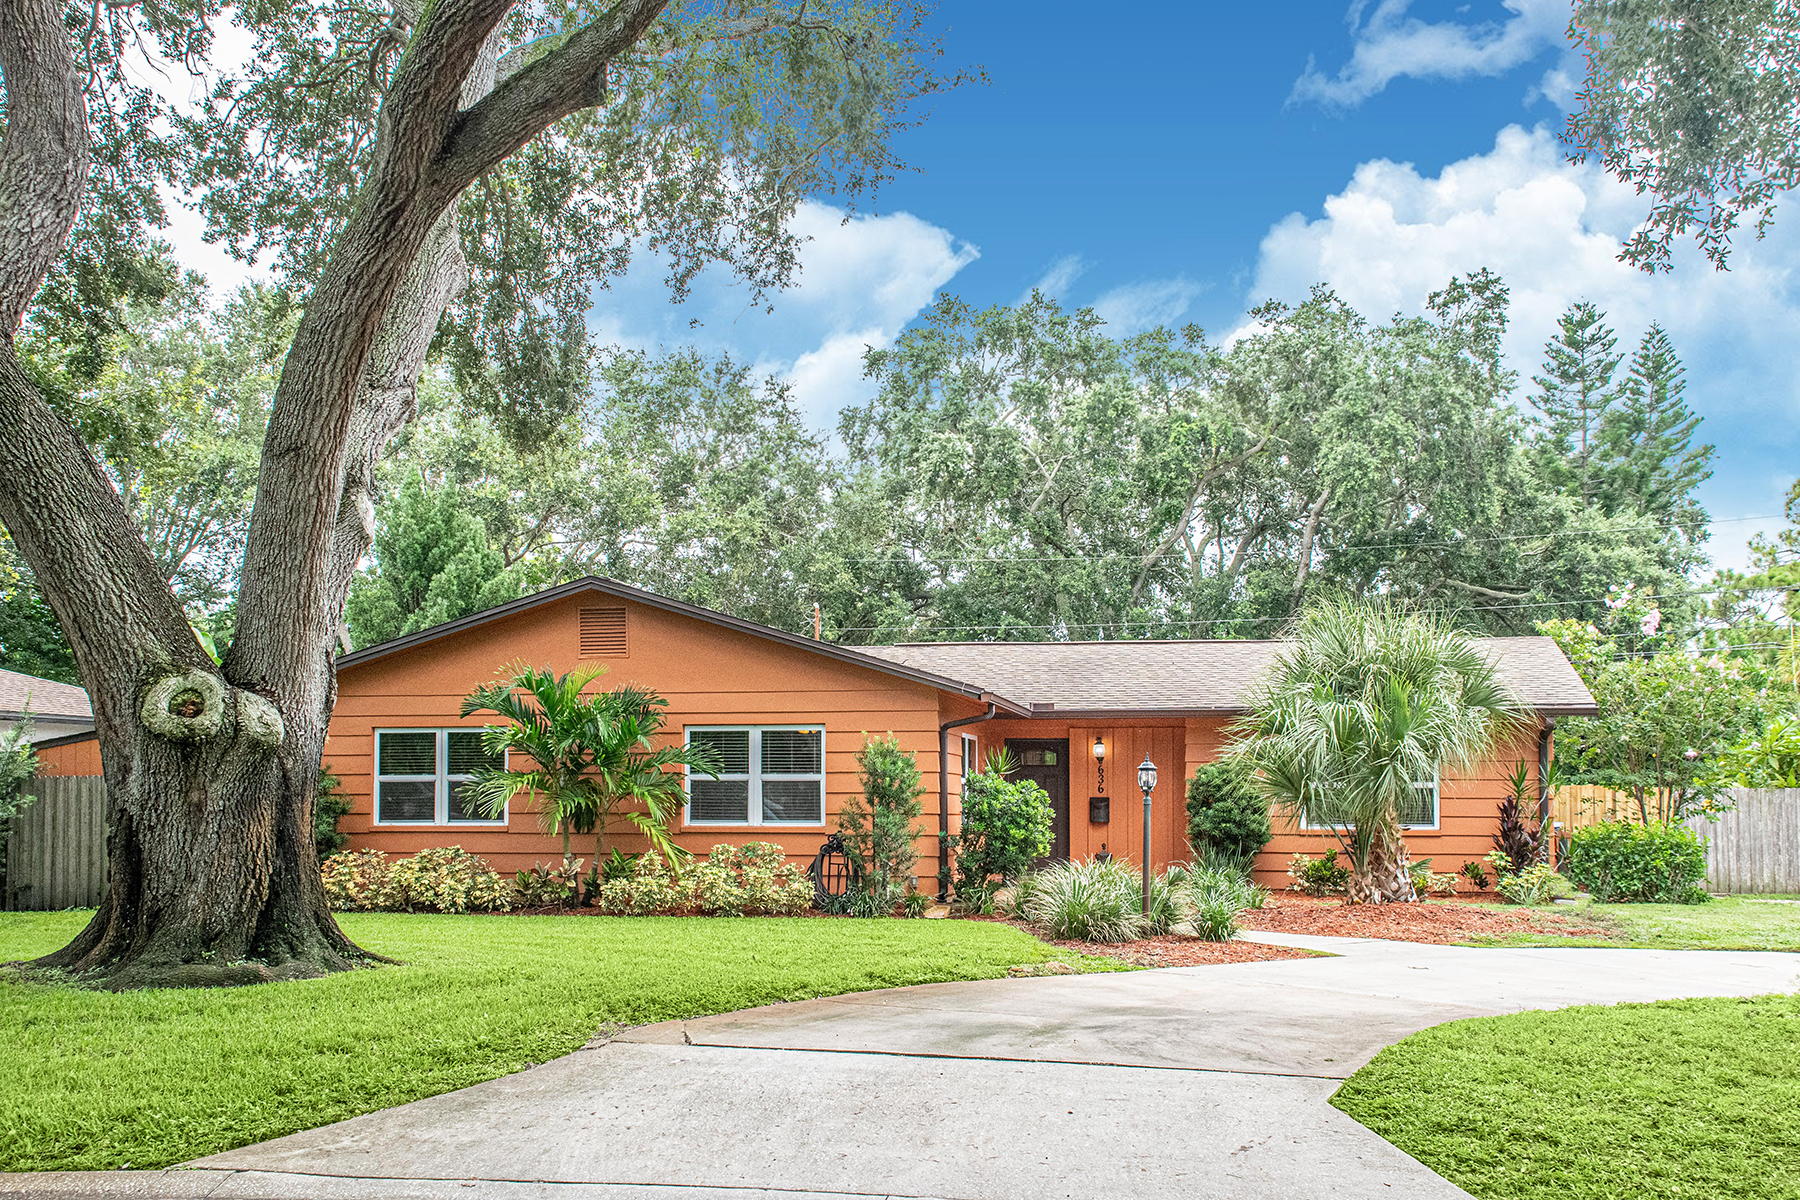 Single Family Homes for Active at 636 Atwood Ave N St. Petersburg, Florida 33702 United States